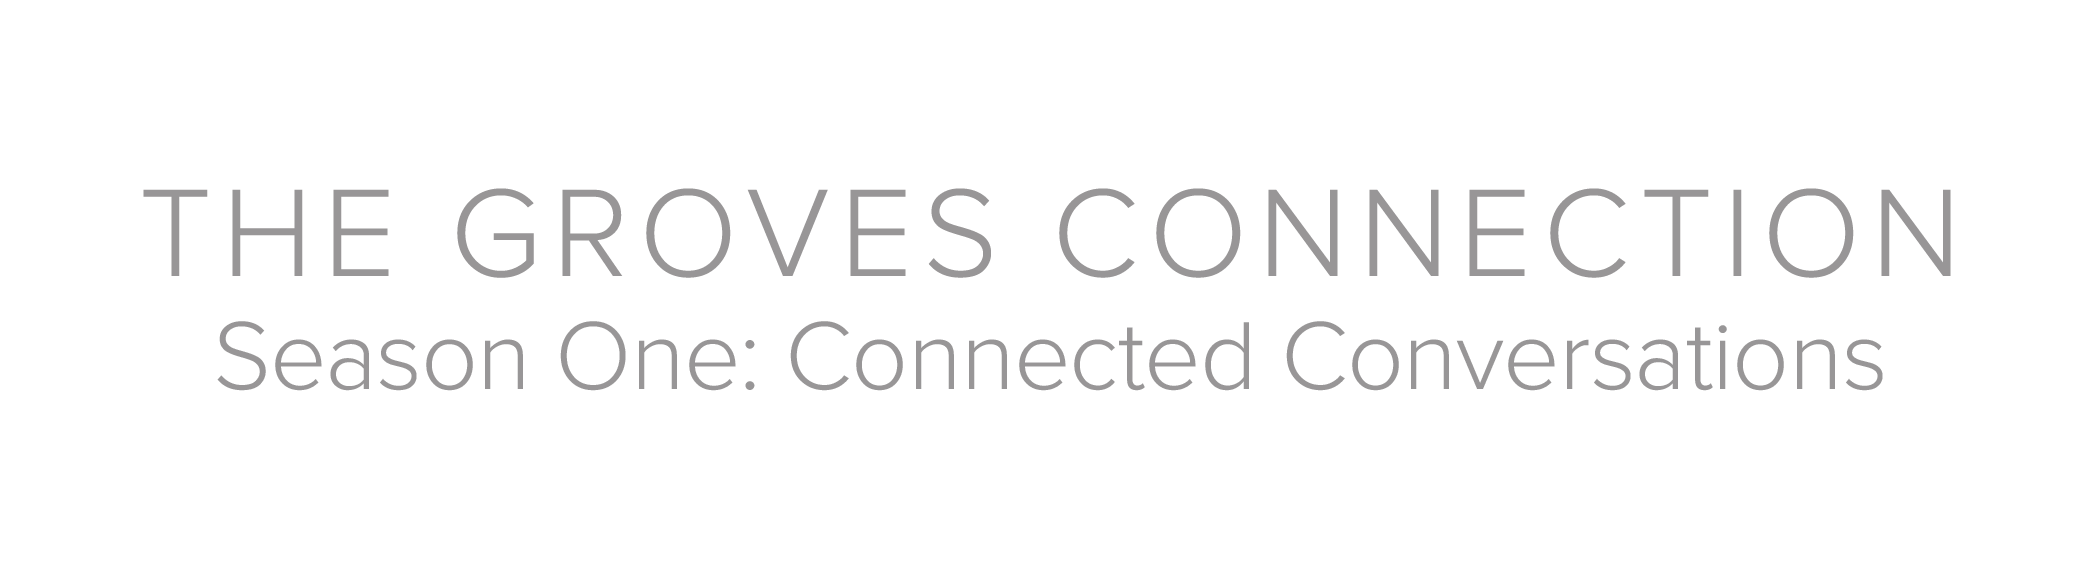 Groves Connection